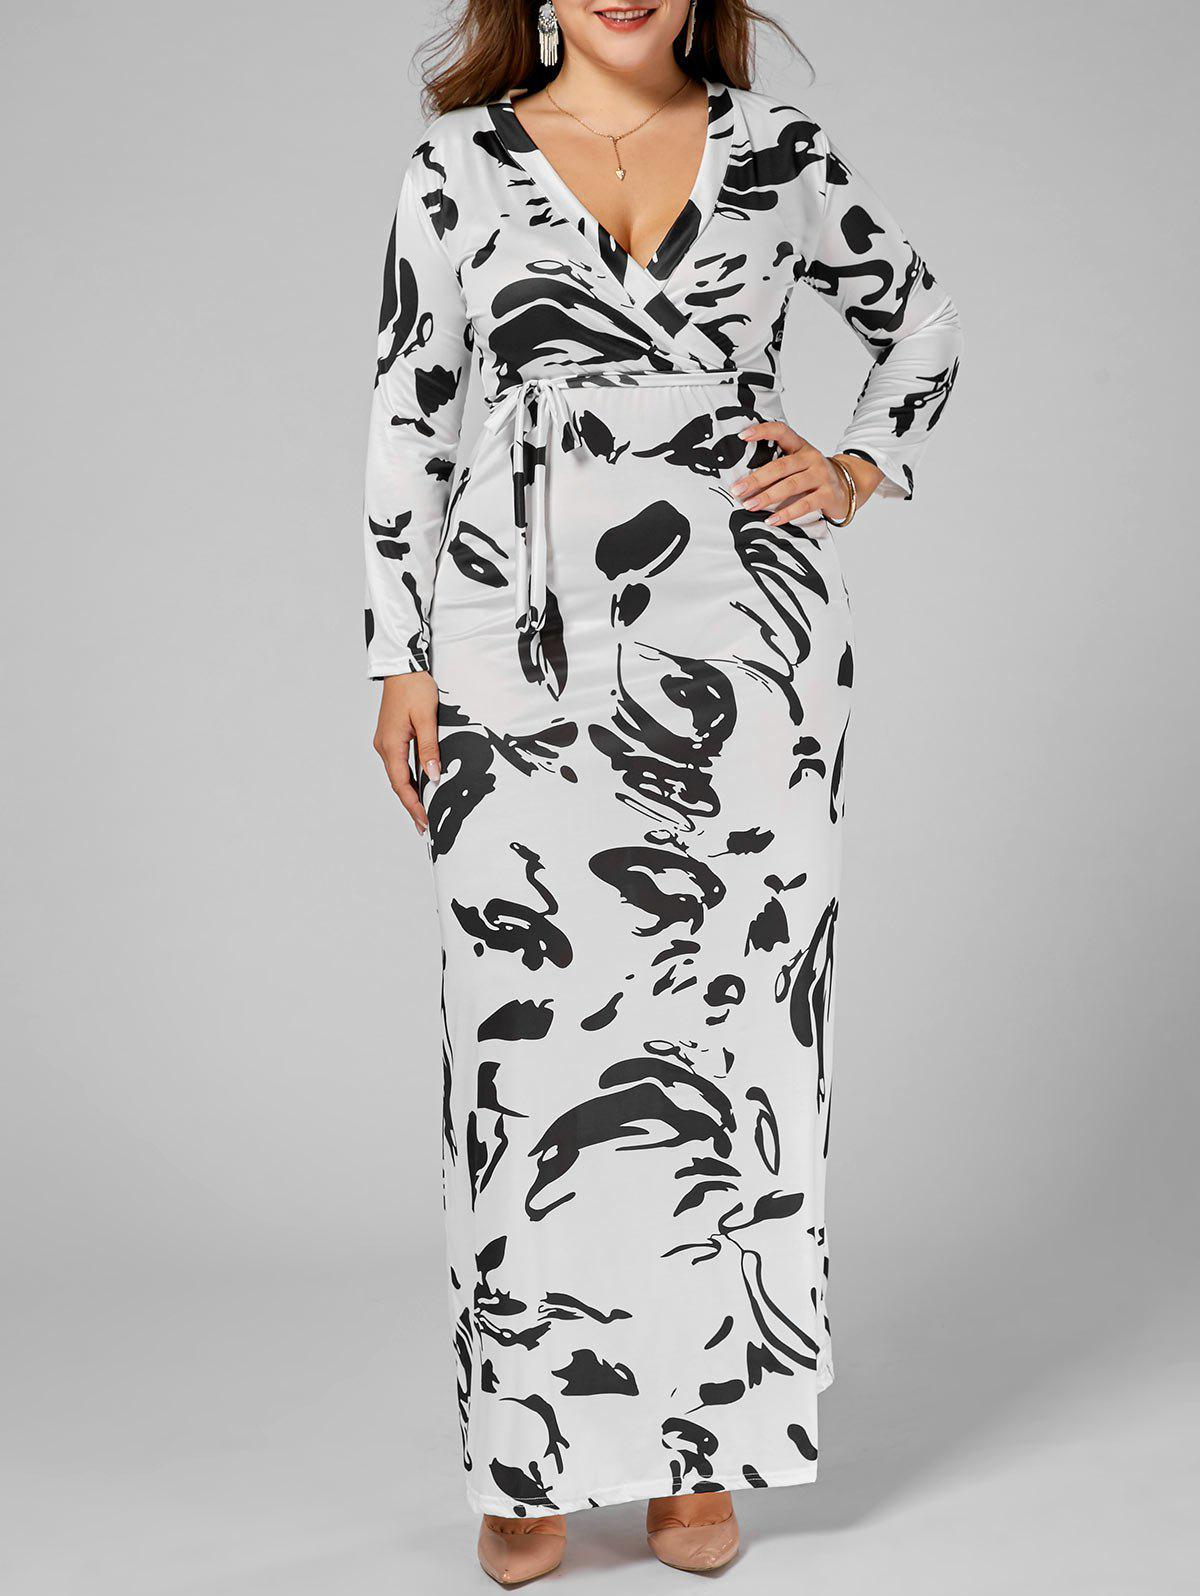 Floor Length V Neck Plus Size Printed DressWOMEN<br><br>Size: 5XL; Color: WHITE; Style: Cute; Material: Polyester; Silhouette: A-Line; Dresses Length: Floor-Length; Neckline: V-Neck; Sleeve Length: Short Sleeves; Pattern Type: Print; With Belt: Yes; Season: Summer; Weight: 0.4000kg; Package Contents: 1 x Dress  1 x Belt;